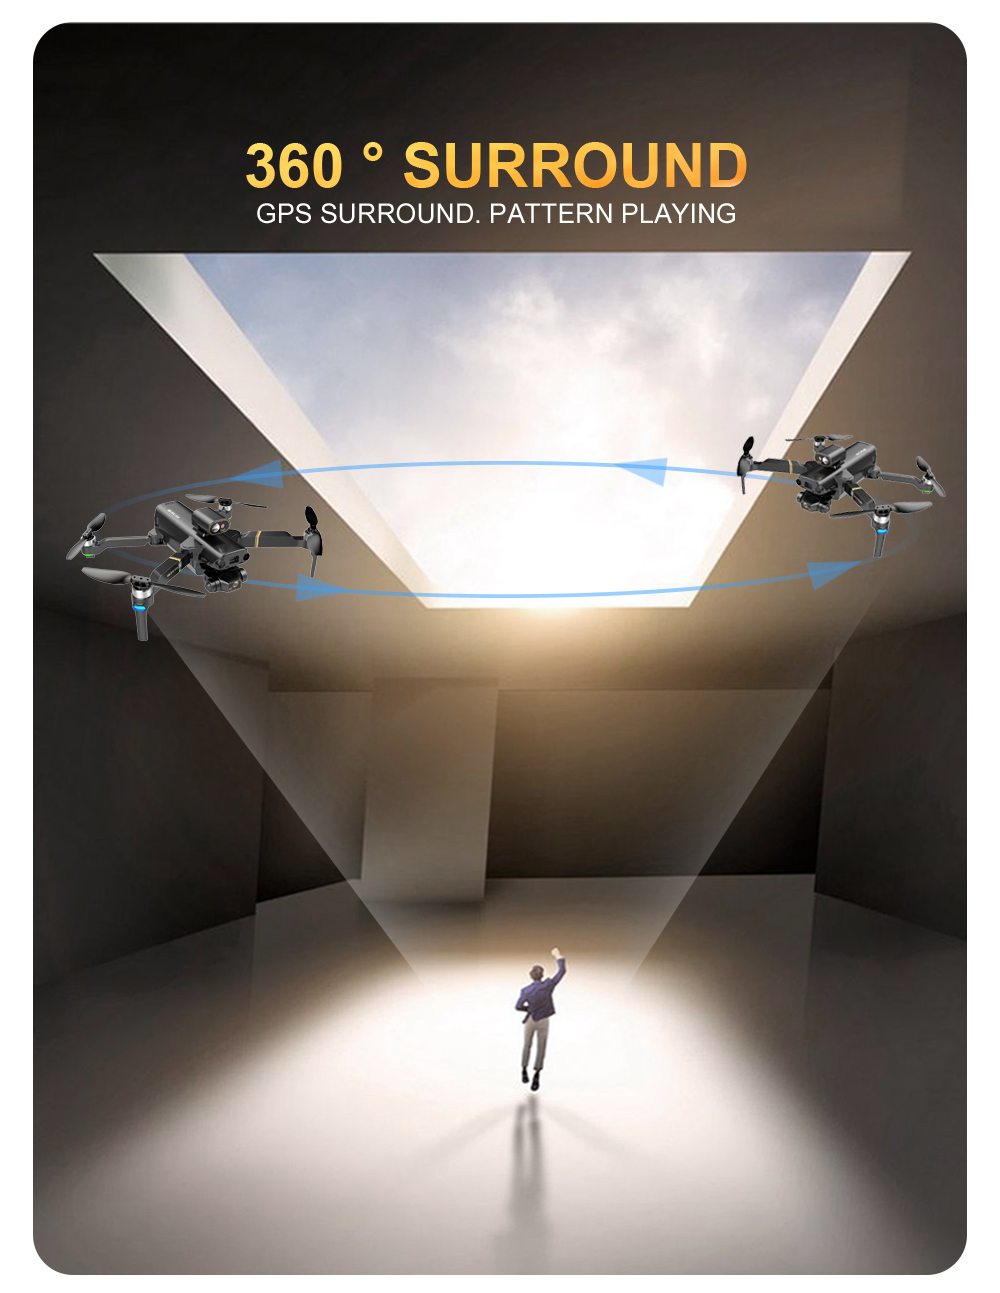 He88baa3266dd46da99020e43d072eb3cZ - KAI ONE MAX GPS Drone 4K Camera 5G FPV WiFi Laser Obstacle Avoidance Altitude Hold Brushless RC Quadcopter Profesional Dron